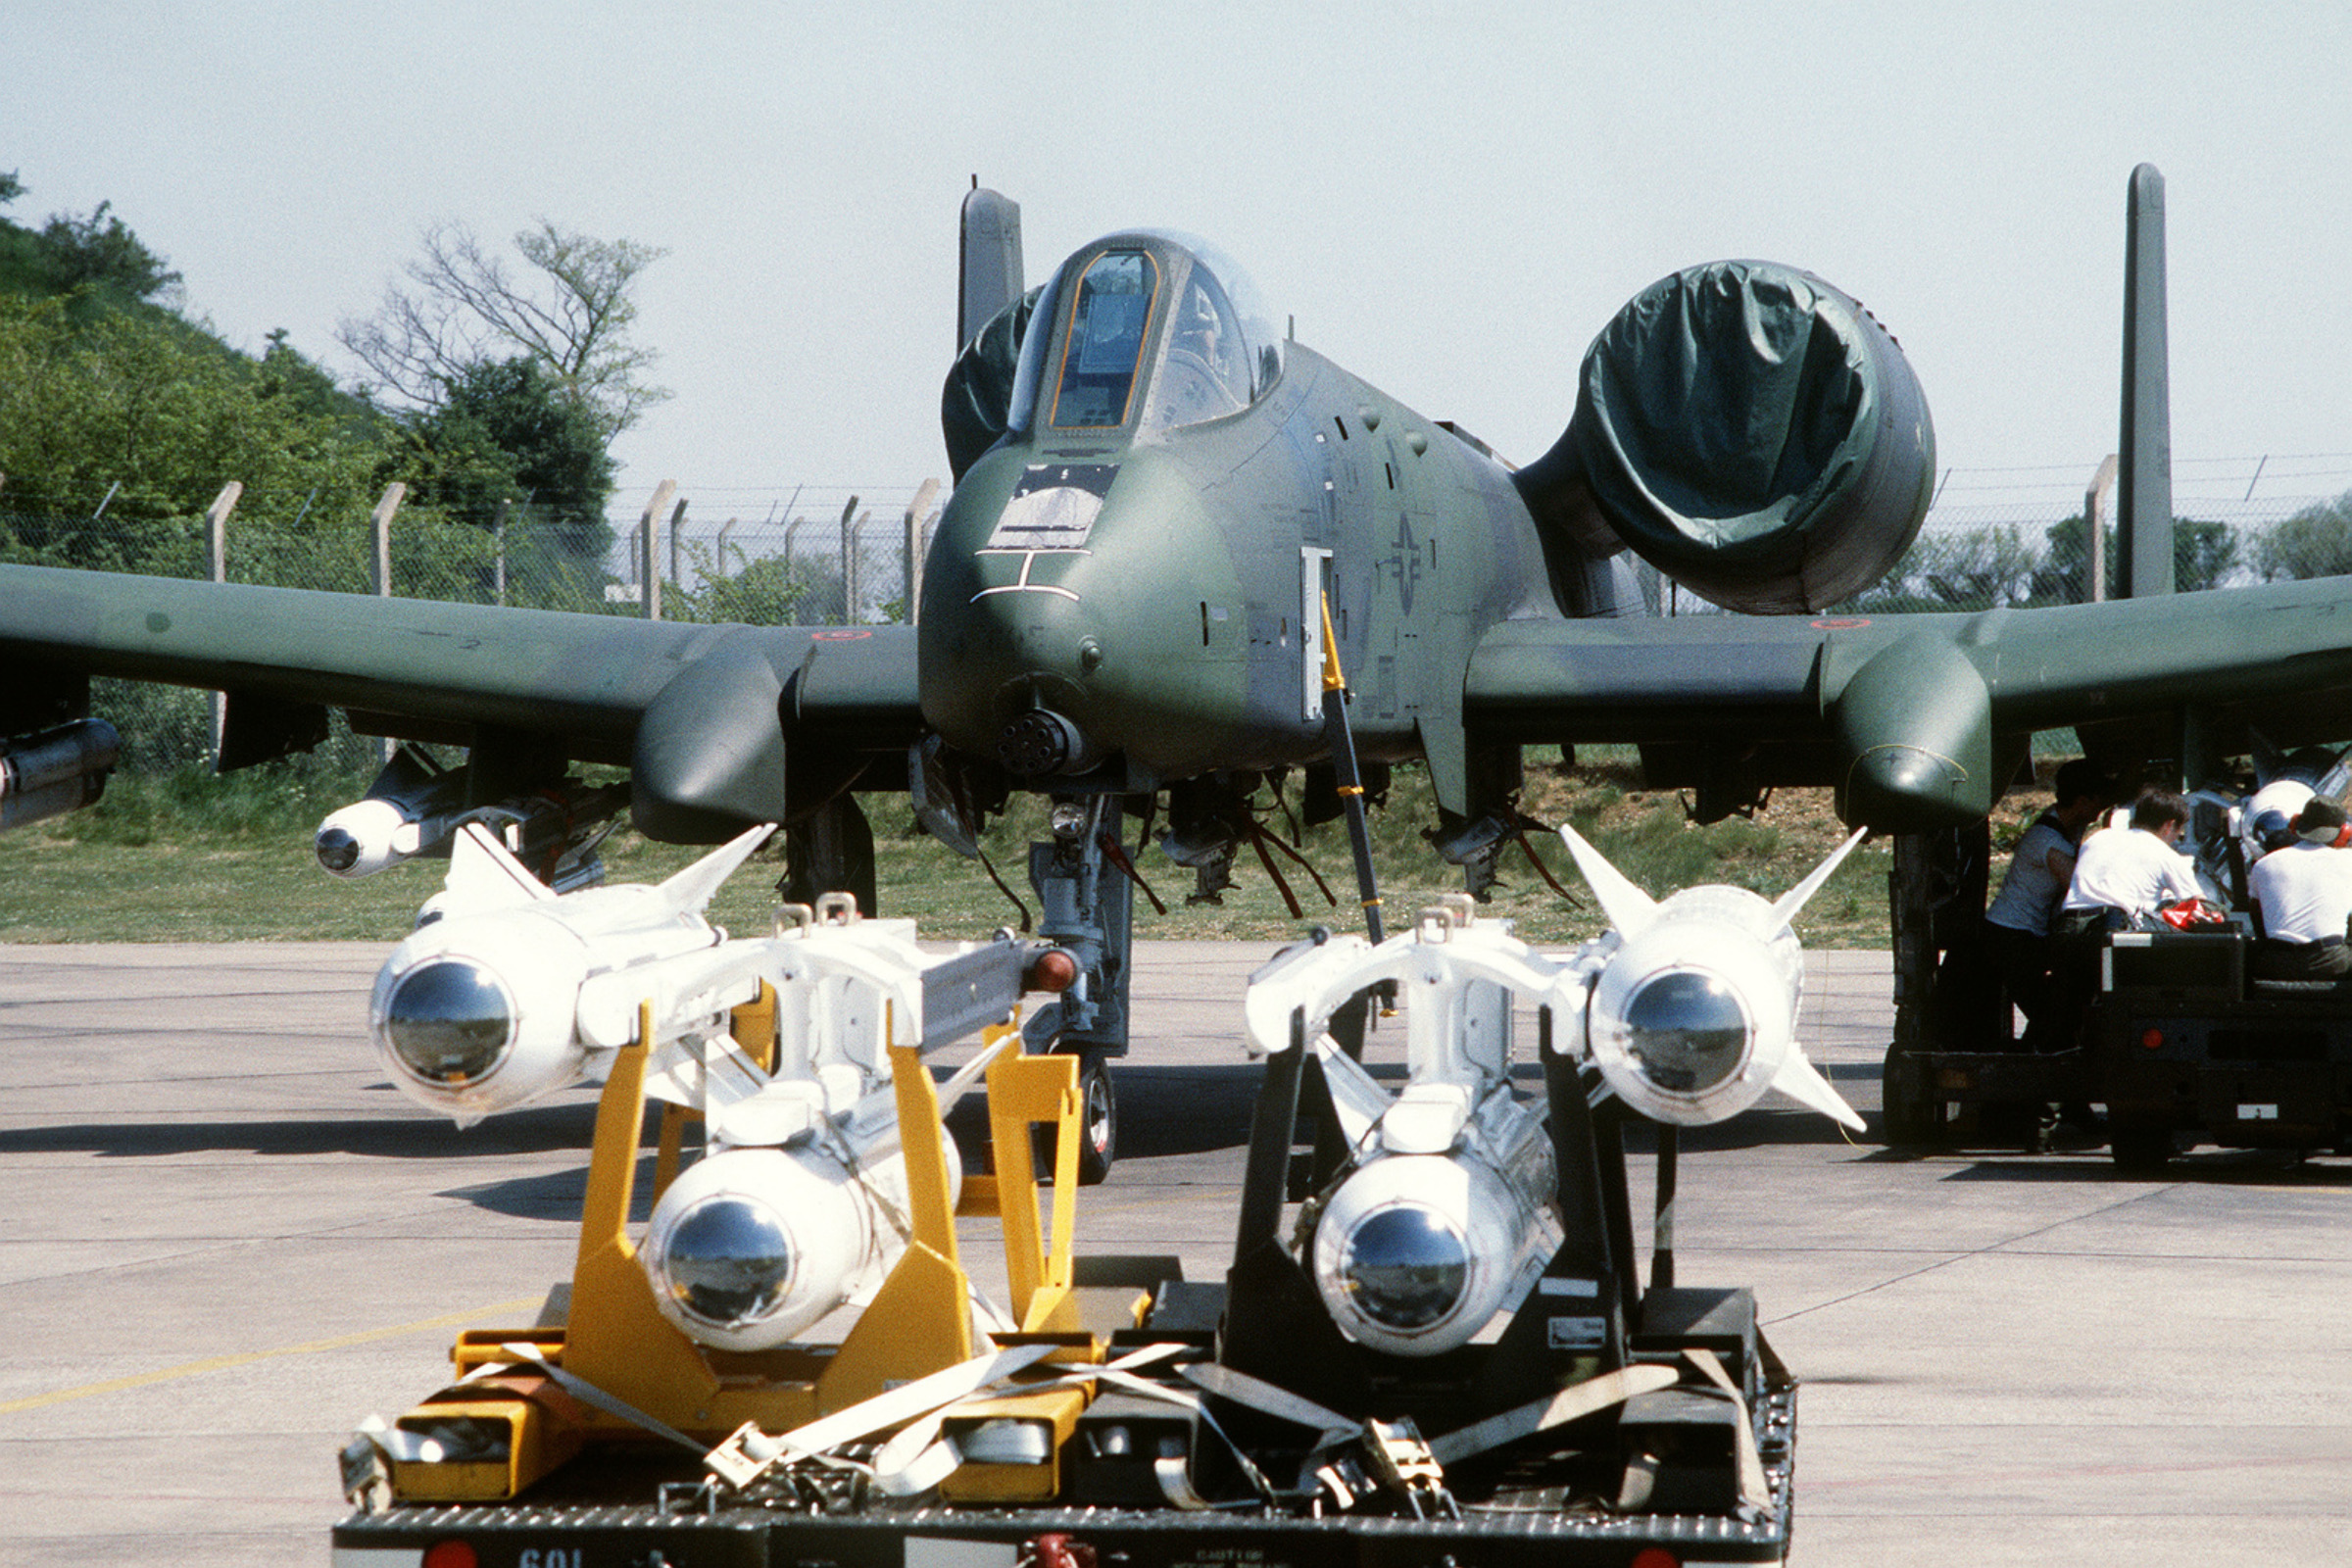 a_front_view_of_an_a-10_thunderbolt_ii_aircraft_being_uploaded_with_agm-65_maverick_bentw_81.jpg